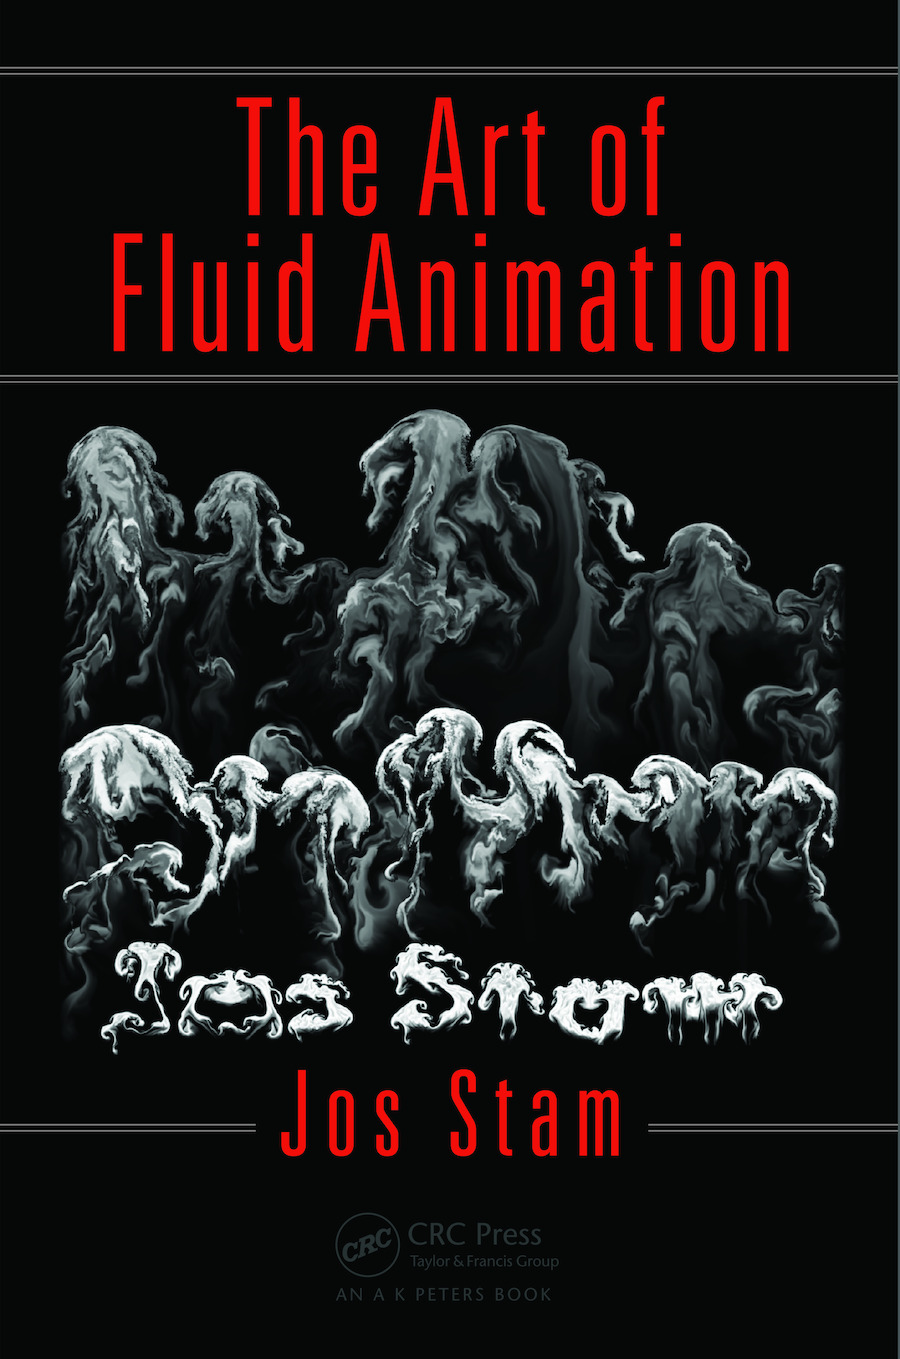 The Art of Fluid Animation book cover